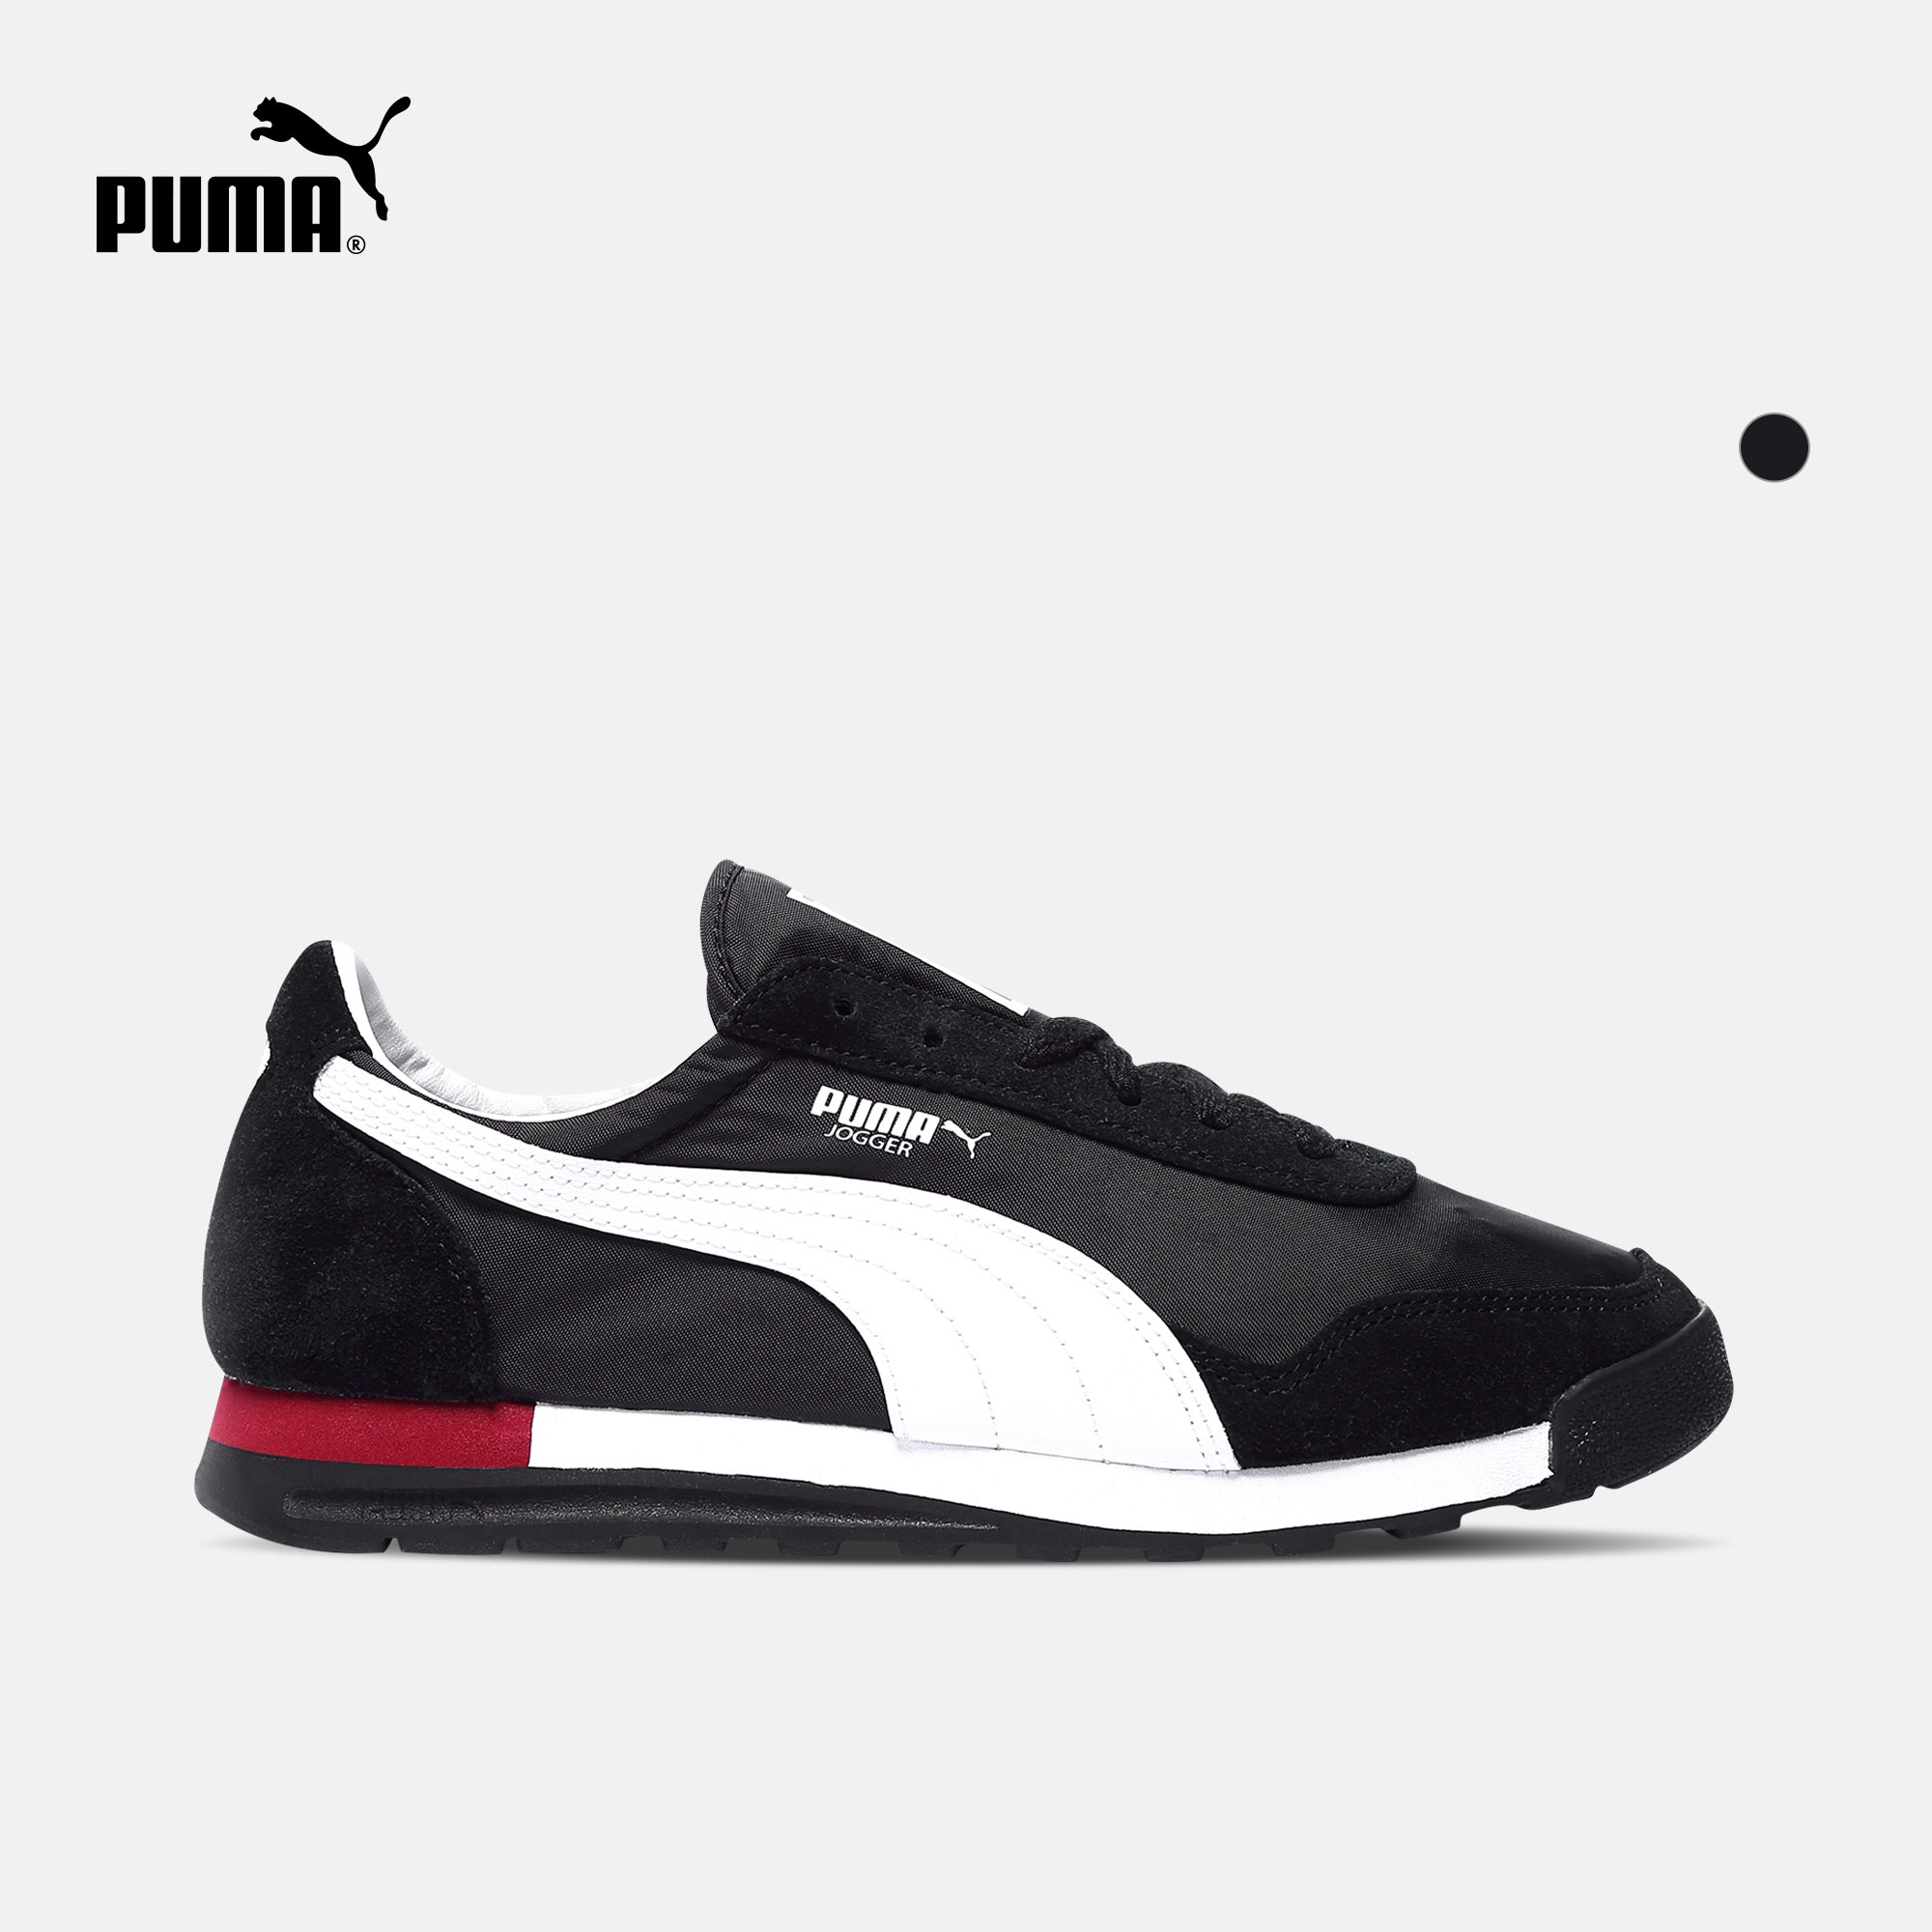 44a13a0ea48 USD 153.85  Puma Puma official men and women with casual shoes ...